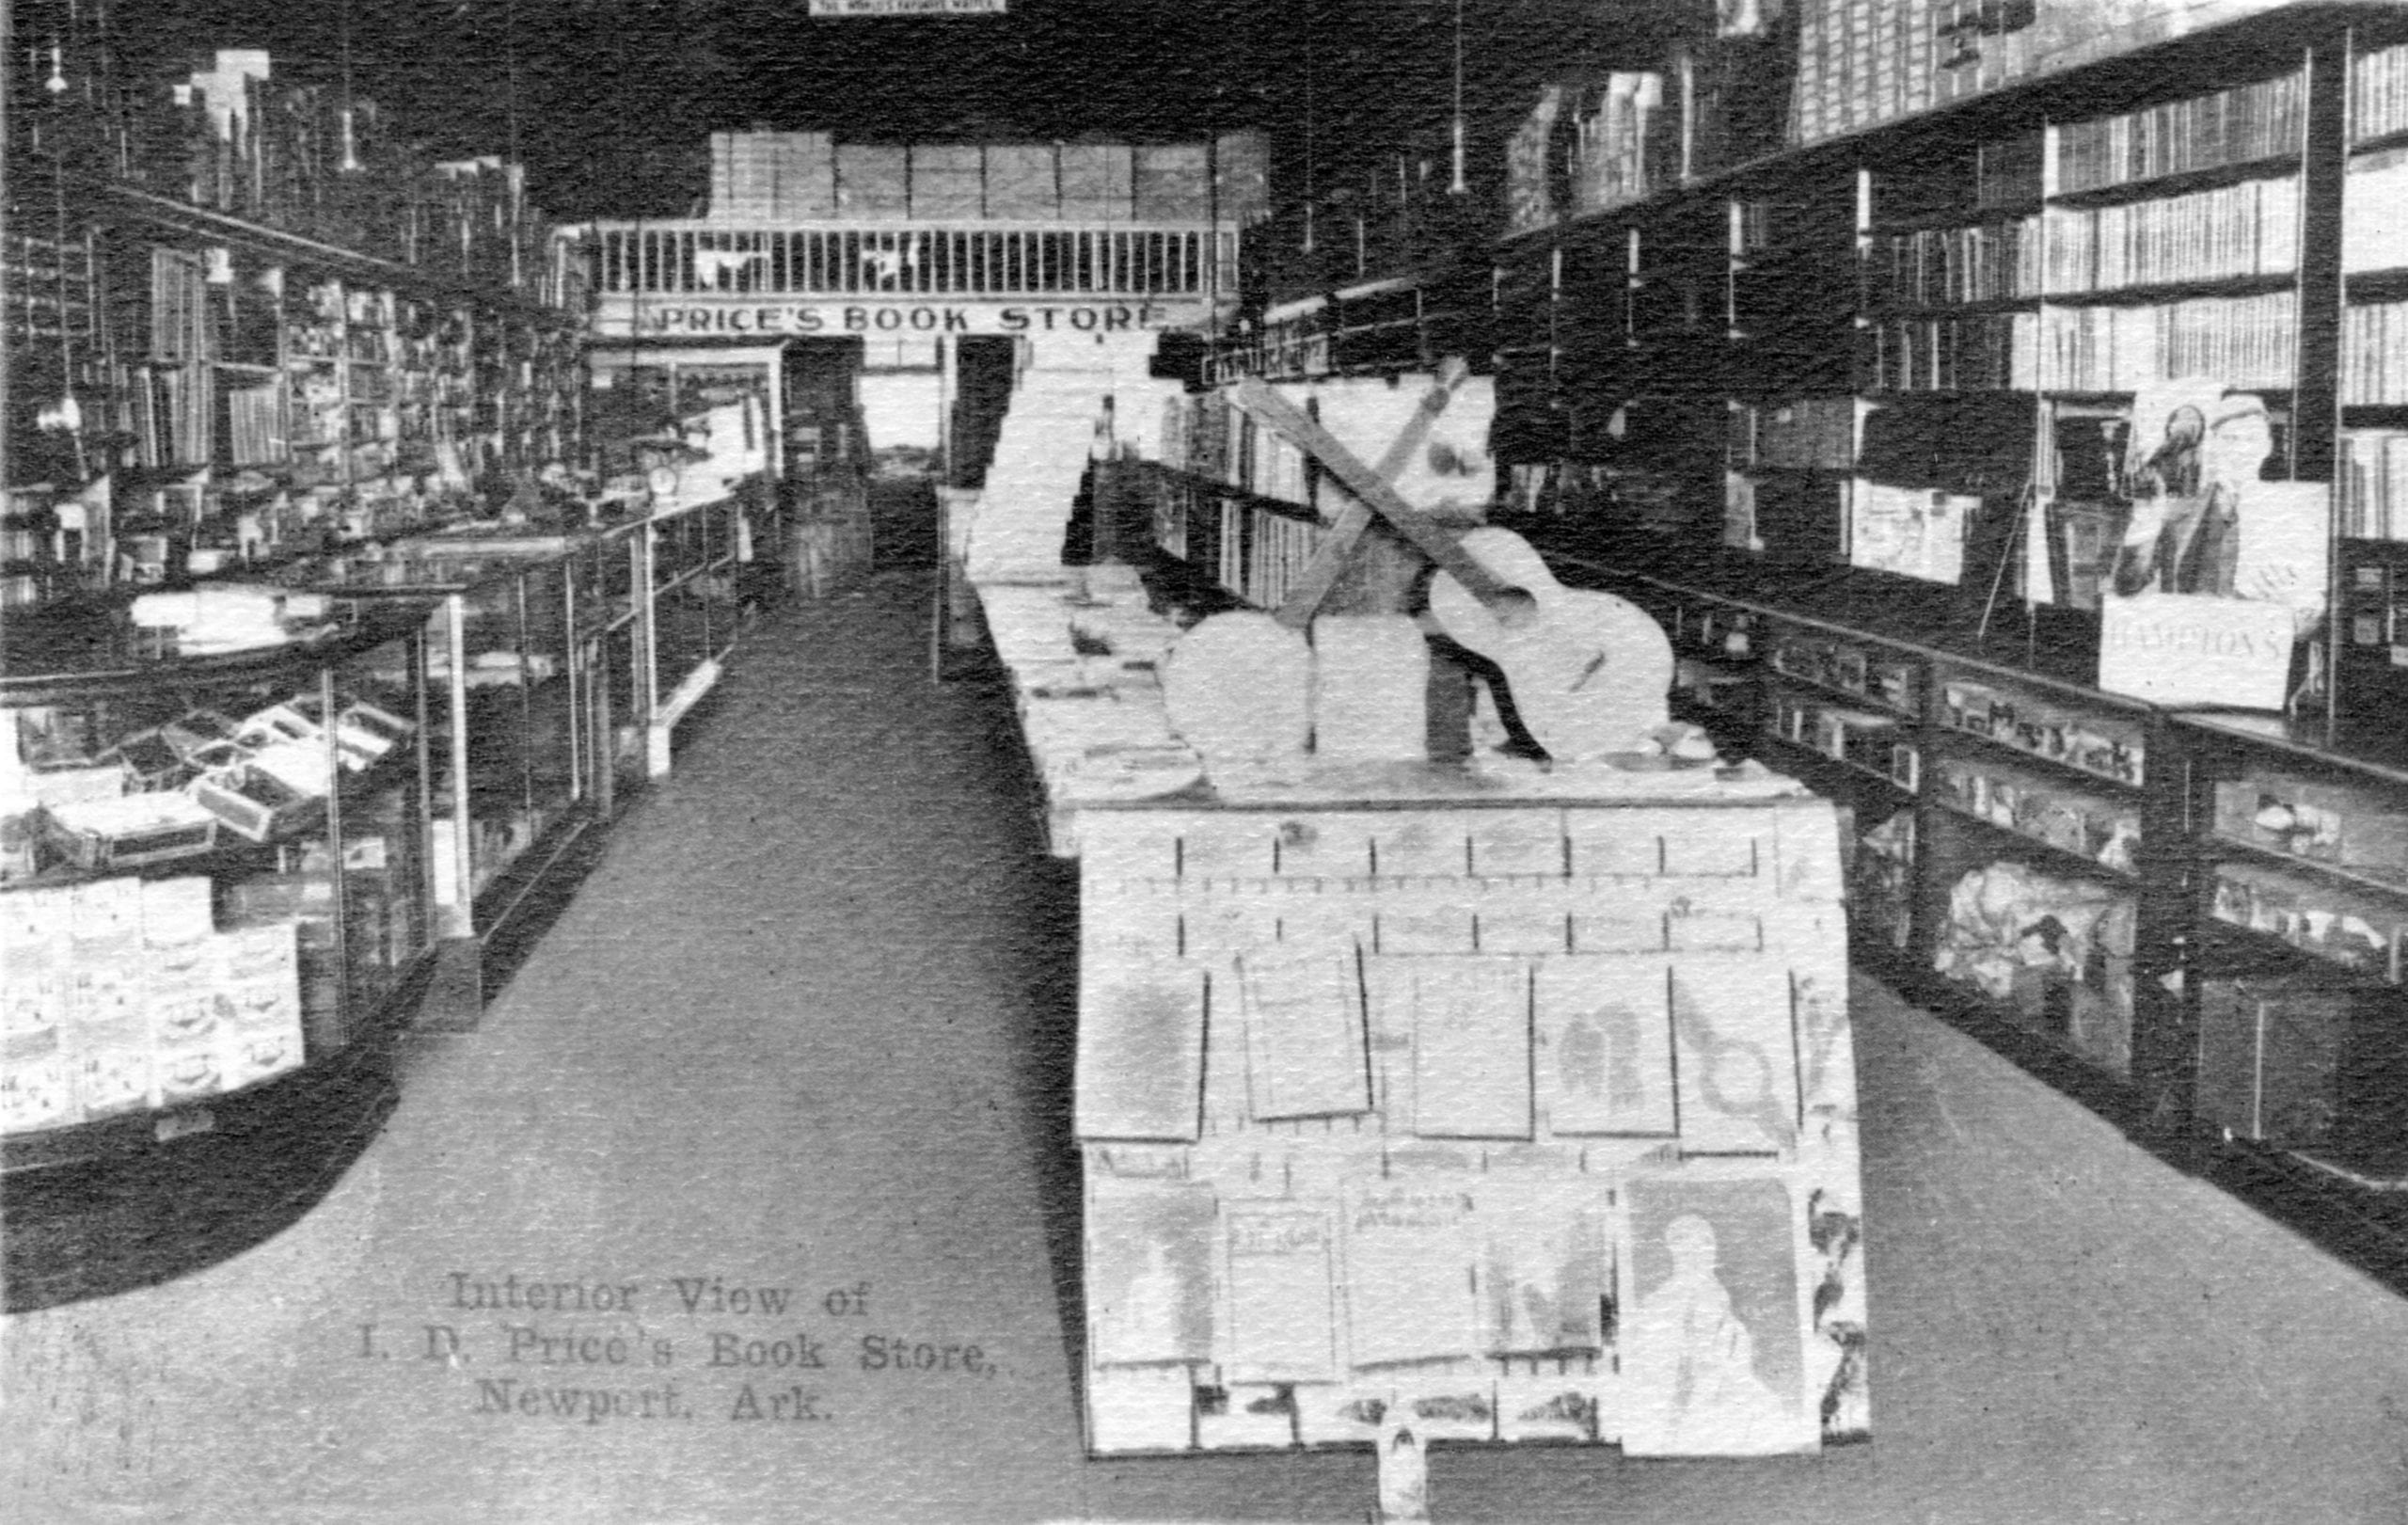 1921 – I.D. Price Book Store